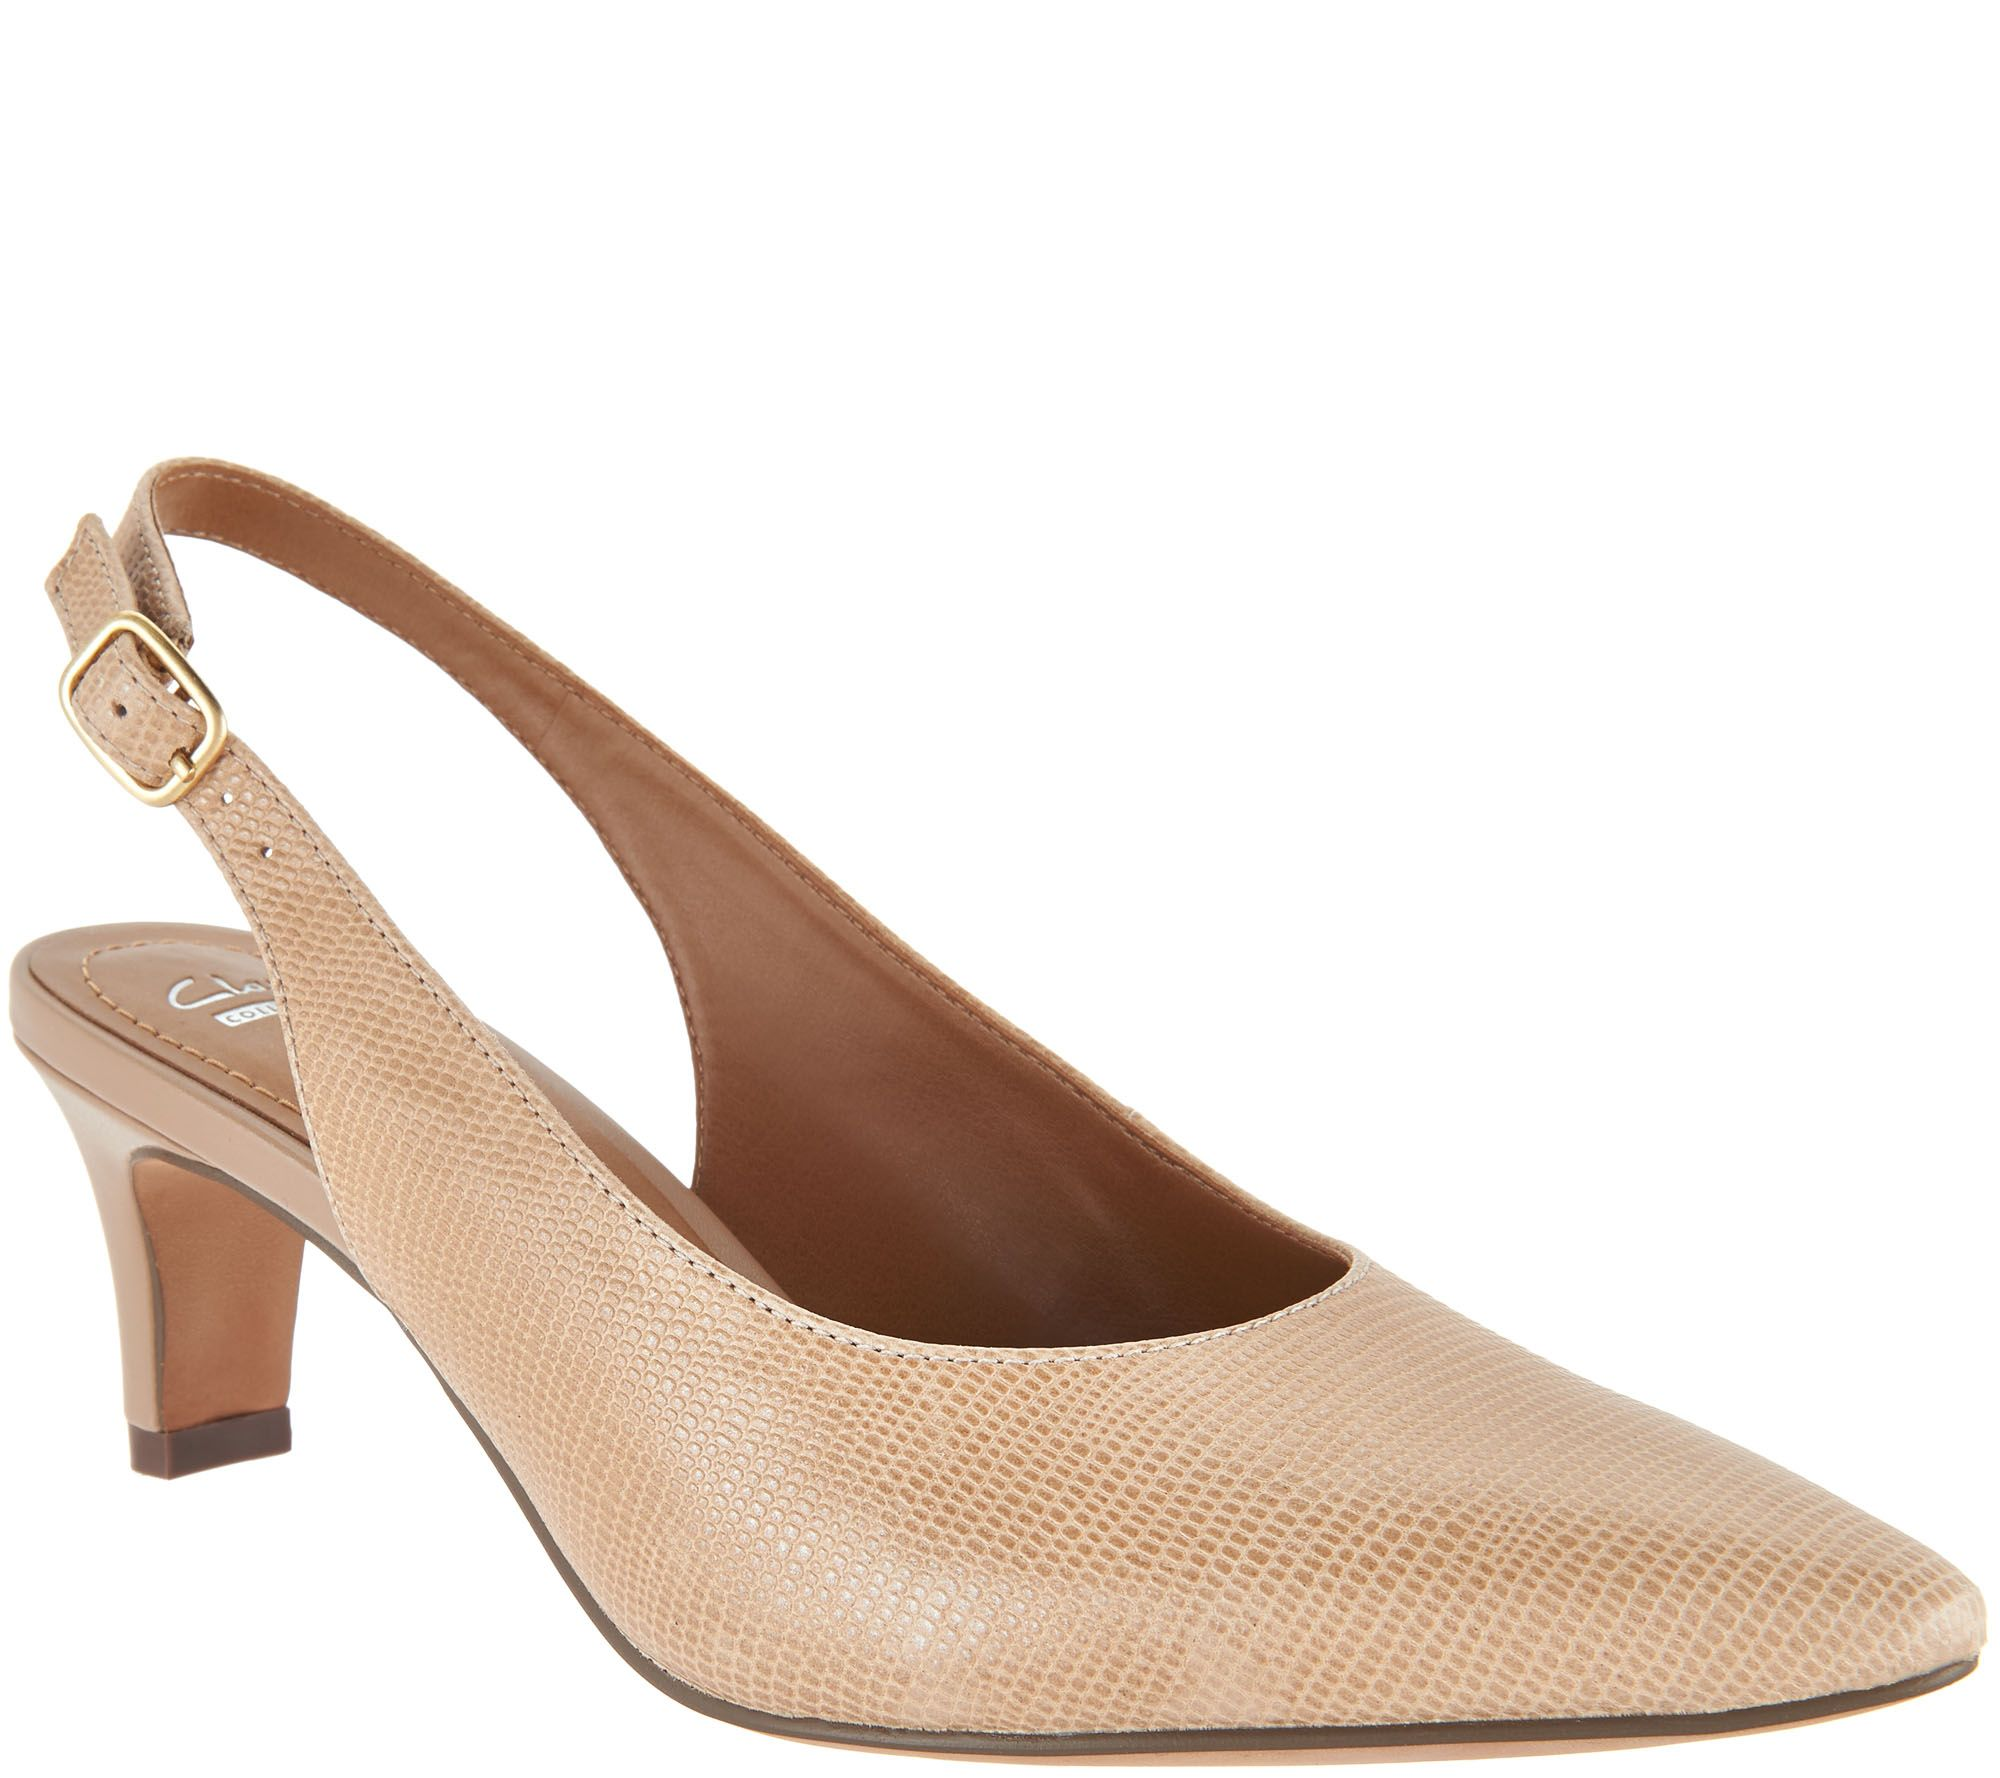 20391d44240 Clarks Leather Kitten Heel Slingback Pumps - Crewso Riley - Page 1 — QVC.com